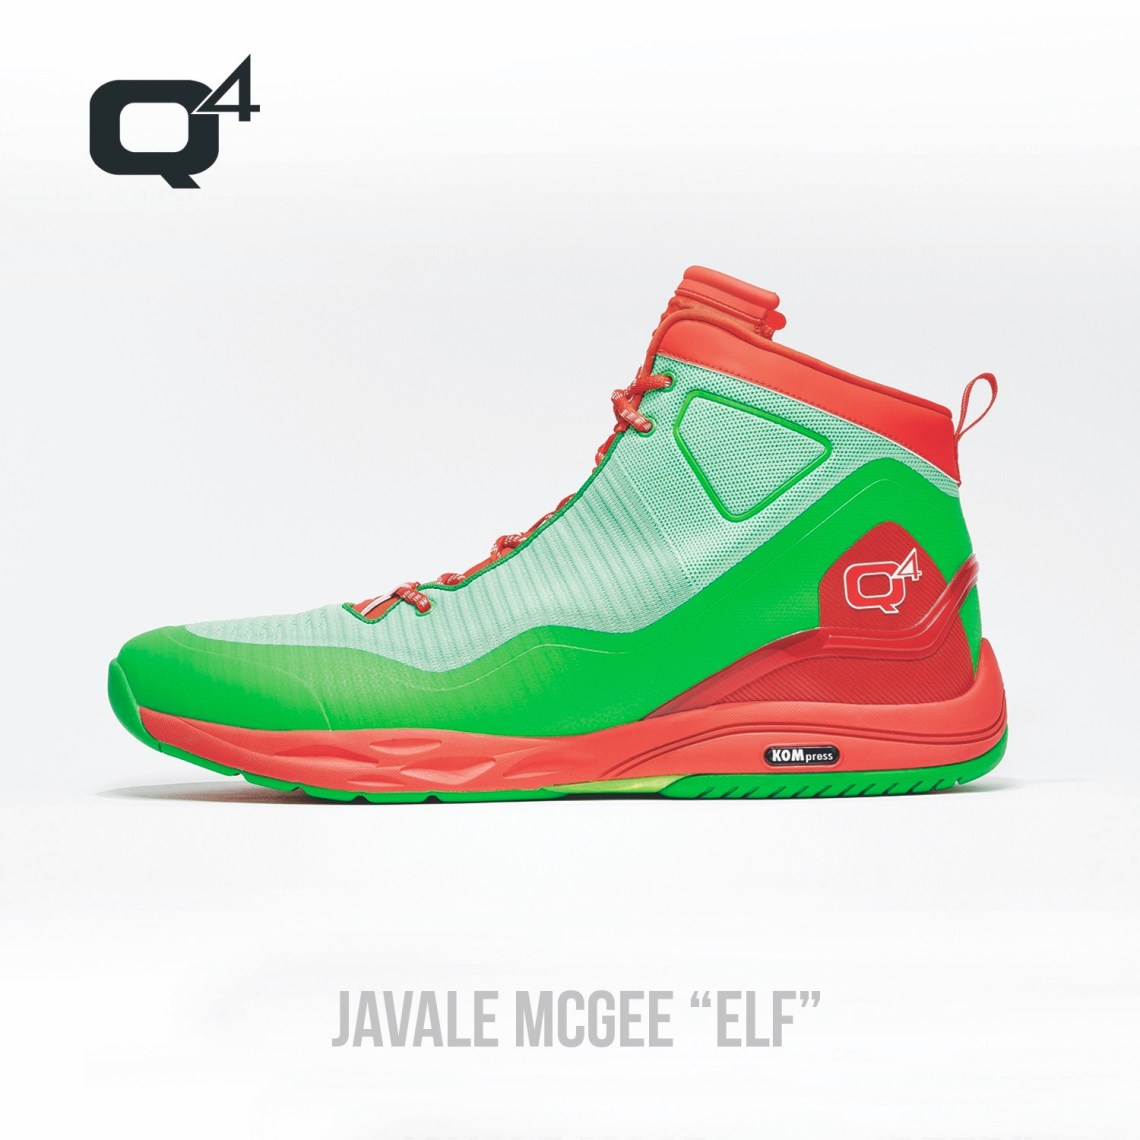 12952af9c069d9 Peep photos of both Moore s and McGee s Christmas-themed kicks from Q4  Sports below.